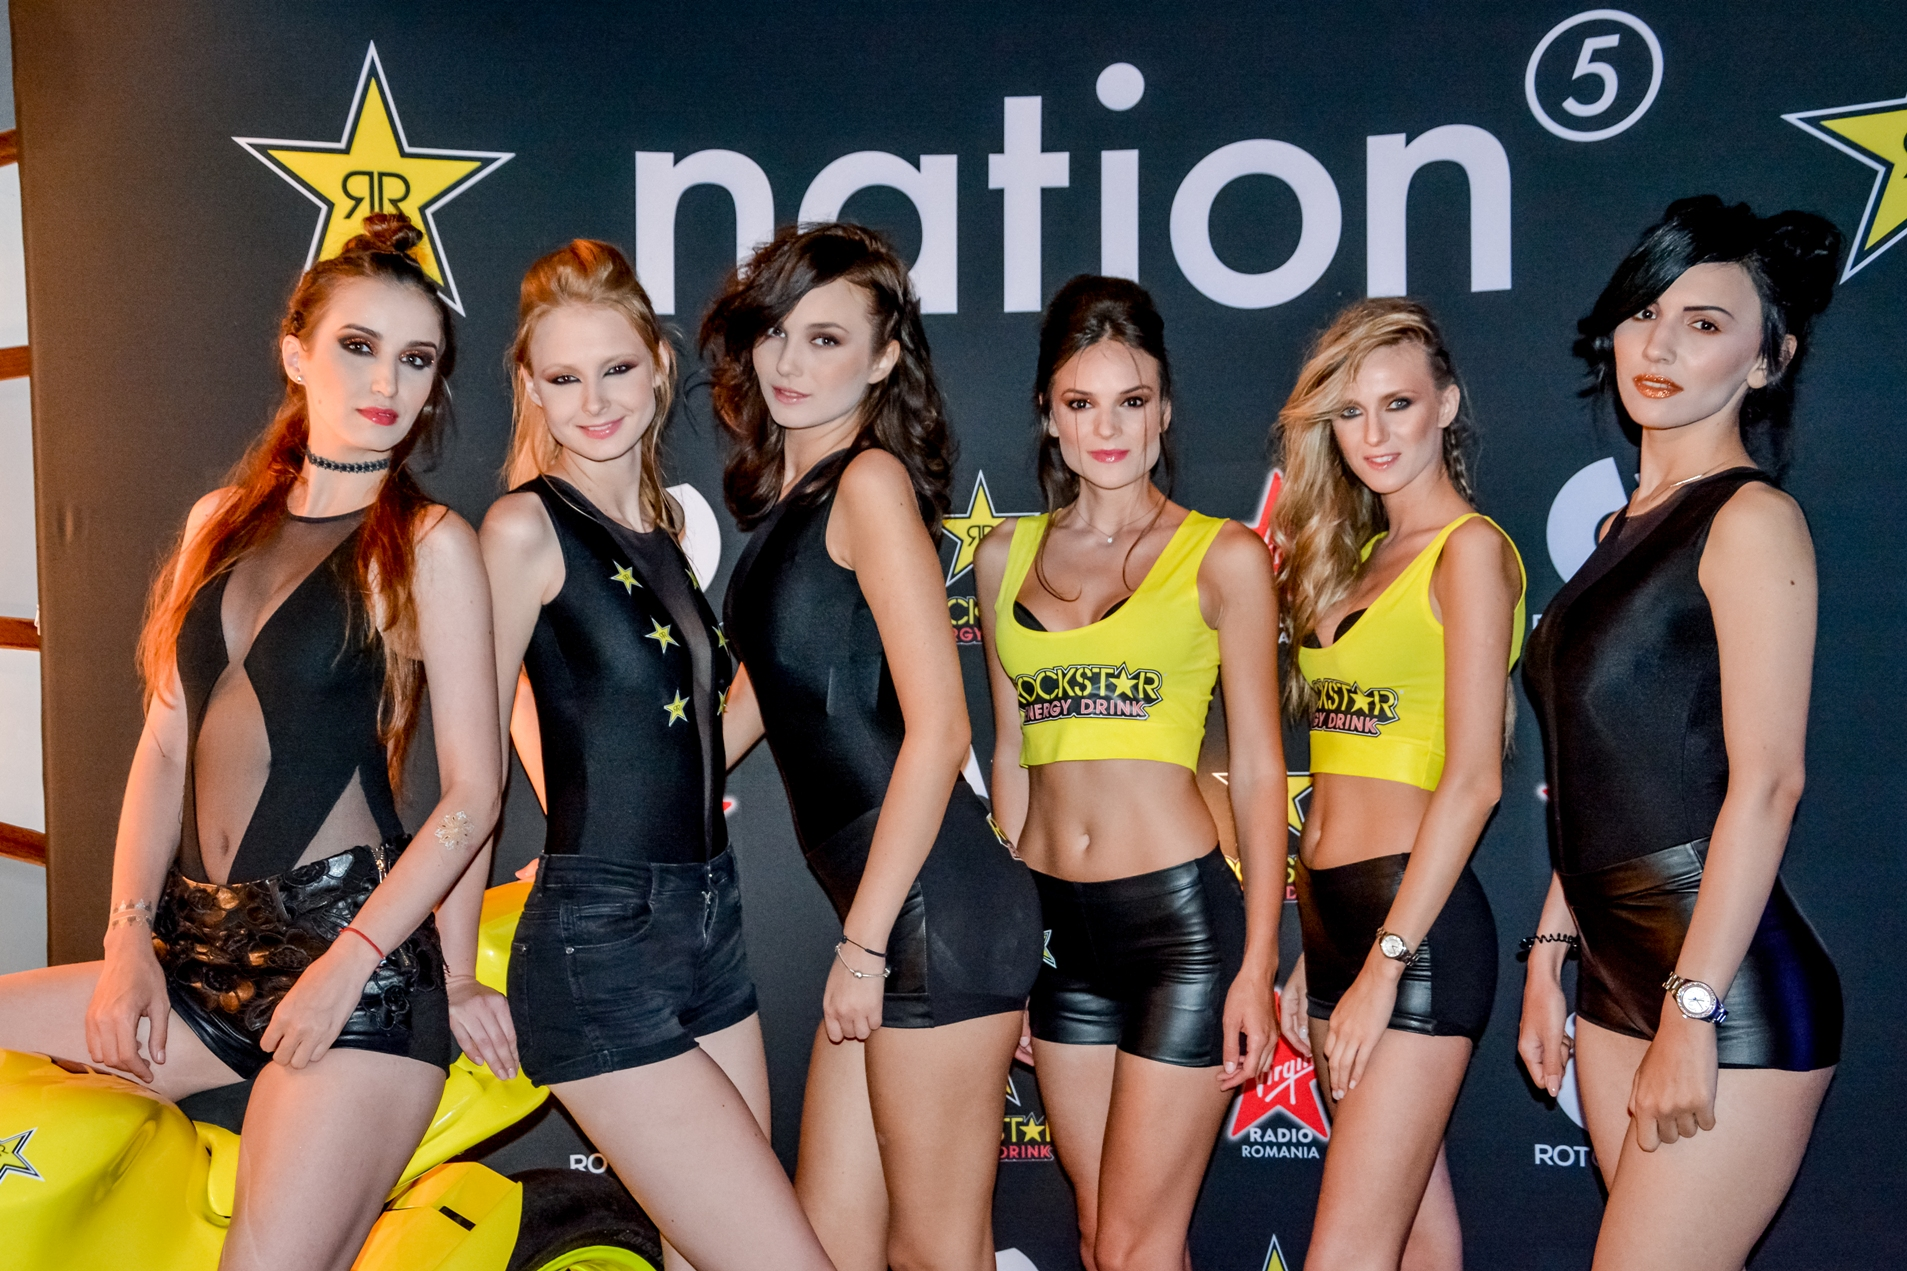 Hostess Rockstar Constanta